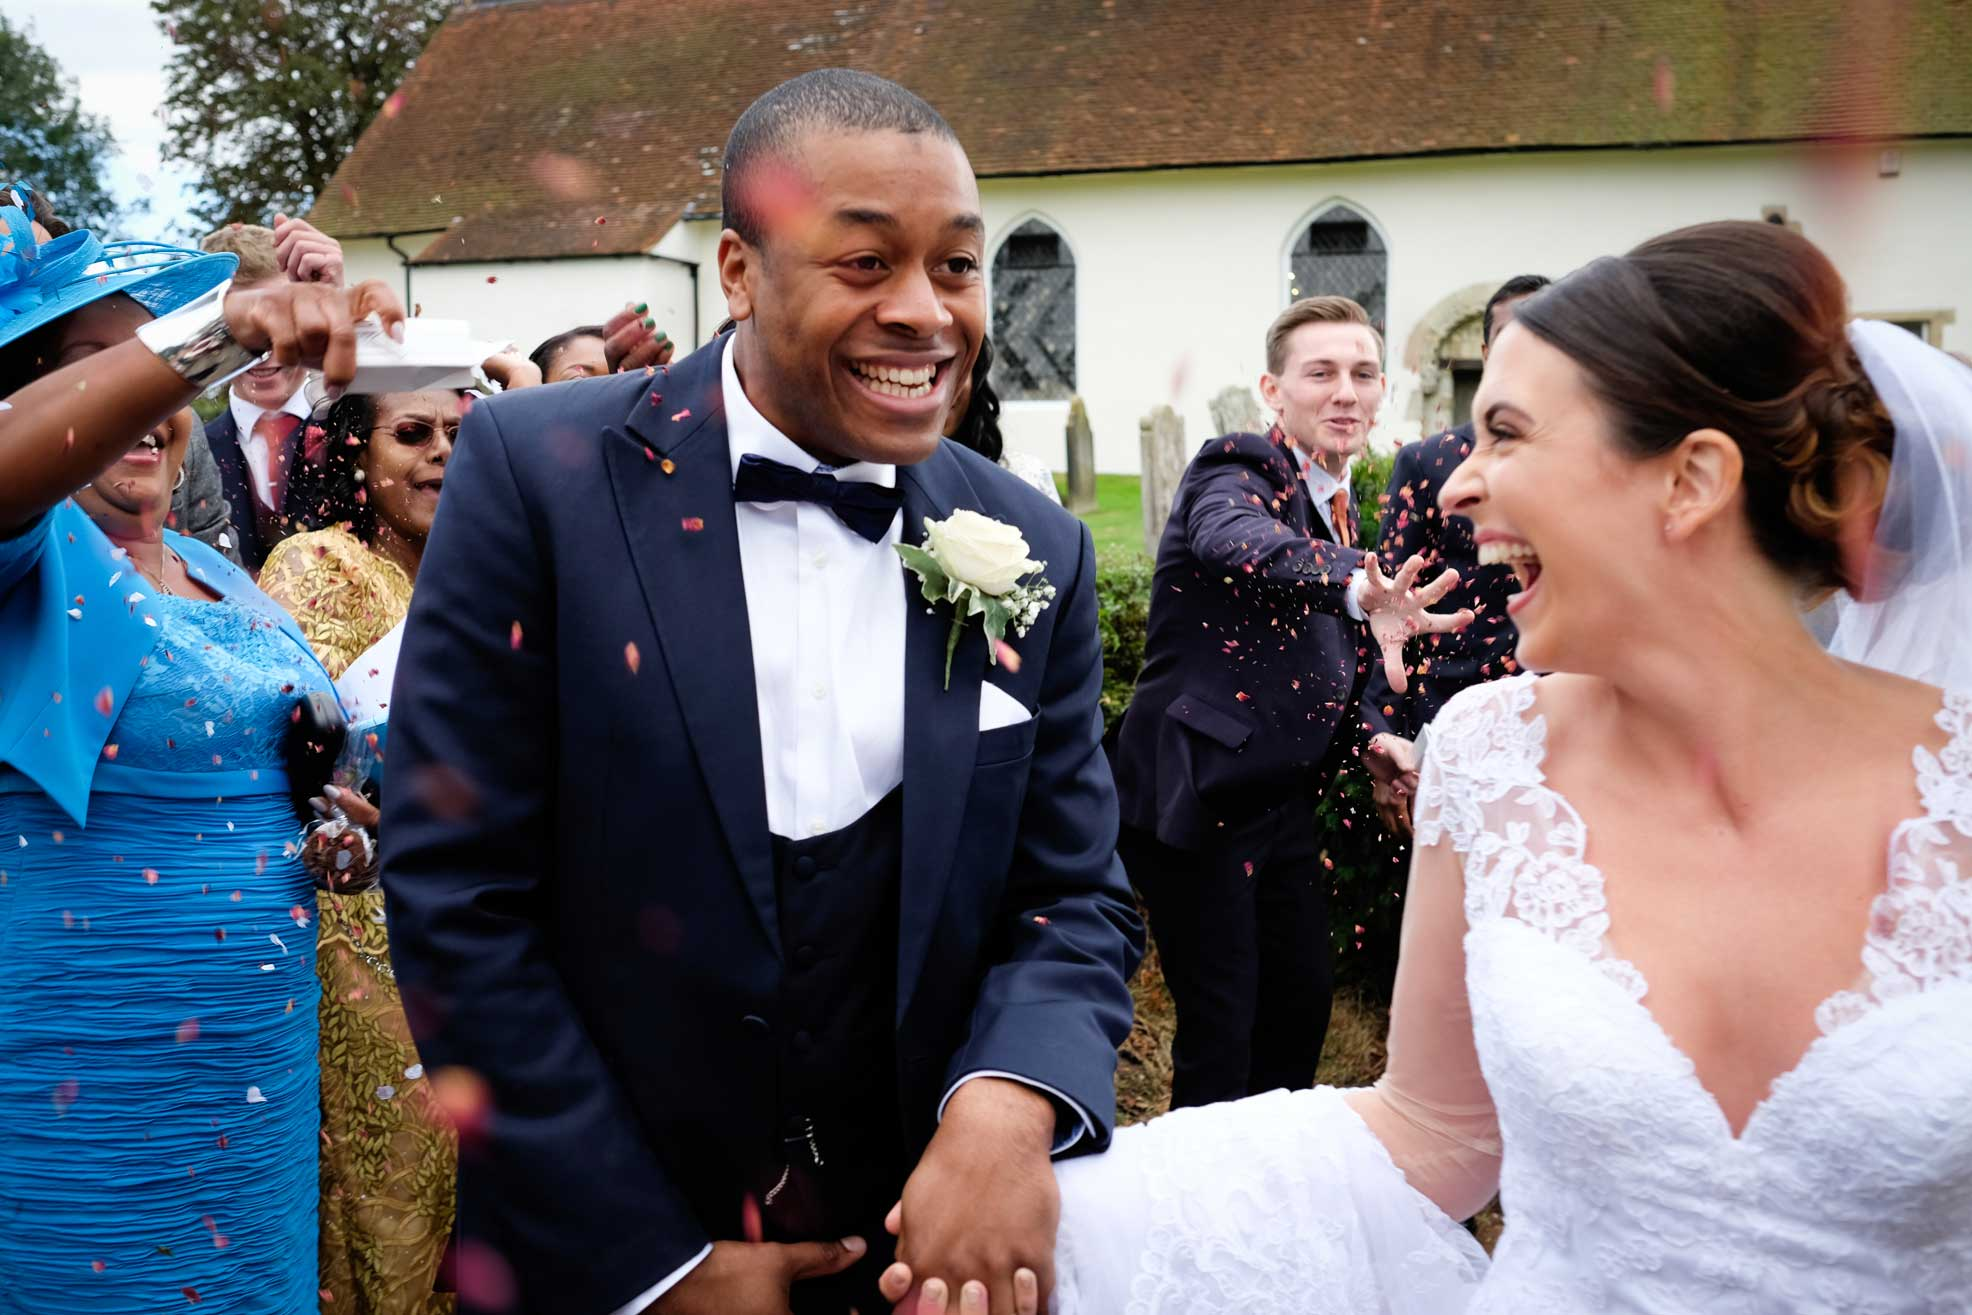 Image result for Bride and groom ask guests to take hay fever medication before wedding